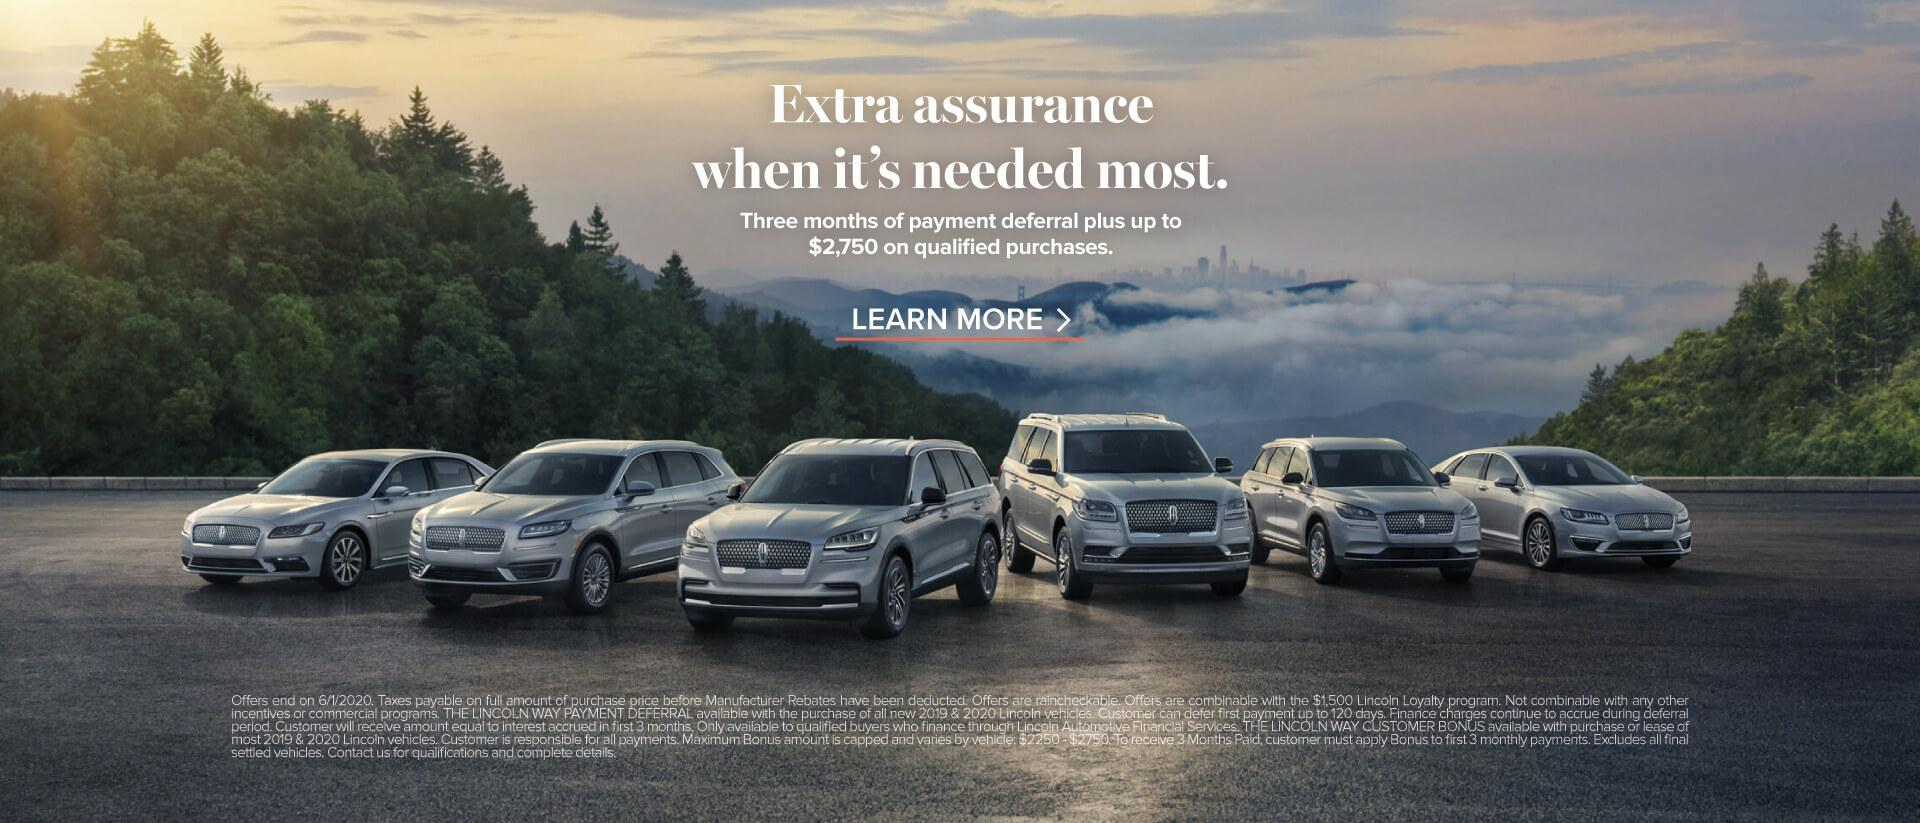 Extra Assurance When It's Needed Most | Lincoln of Canada | Dupuis Lincoln